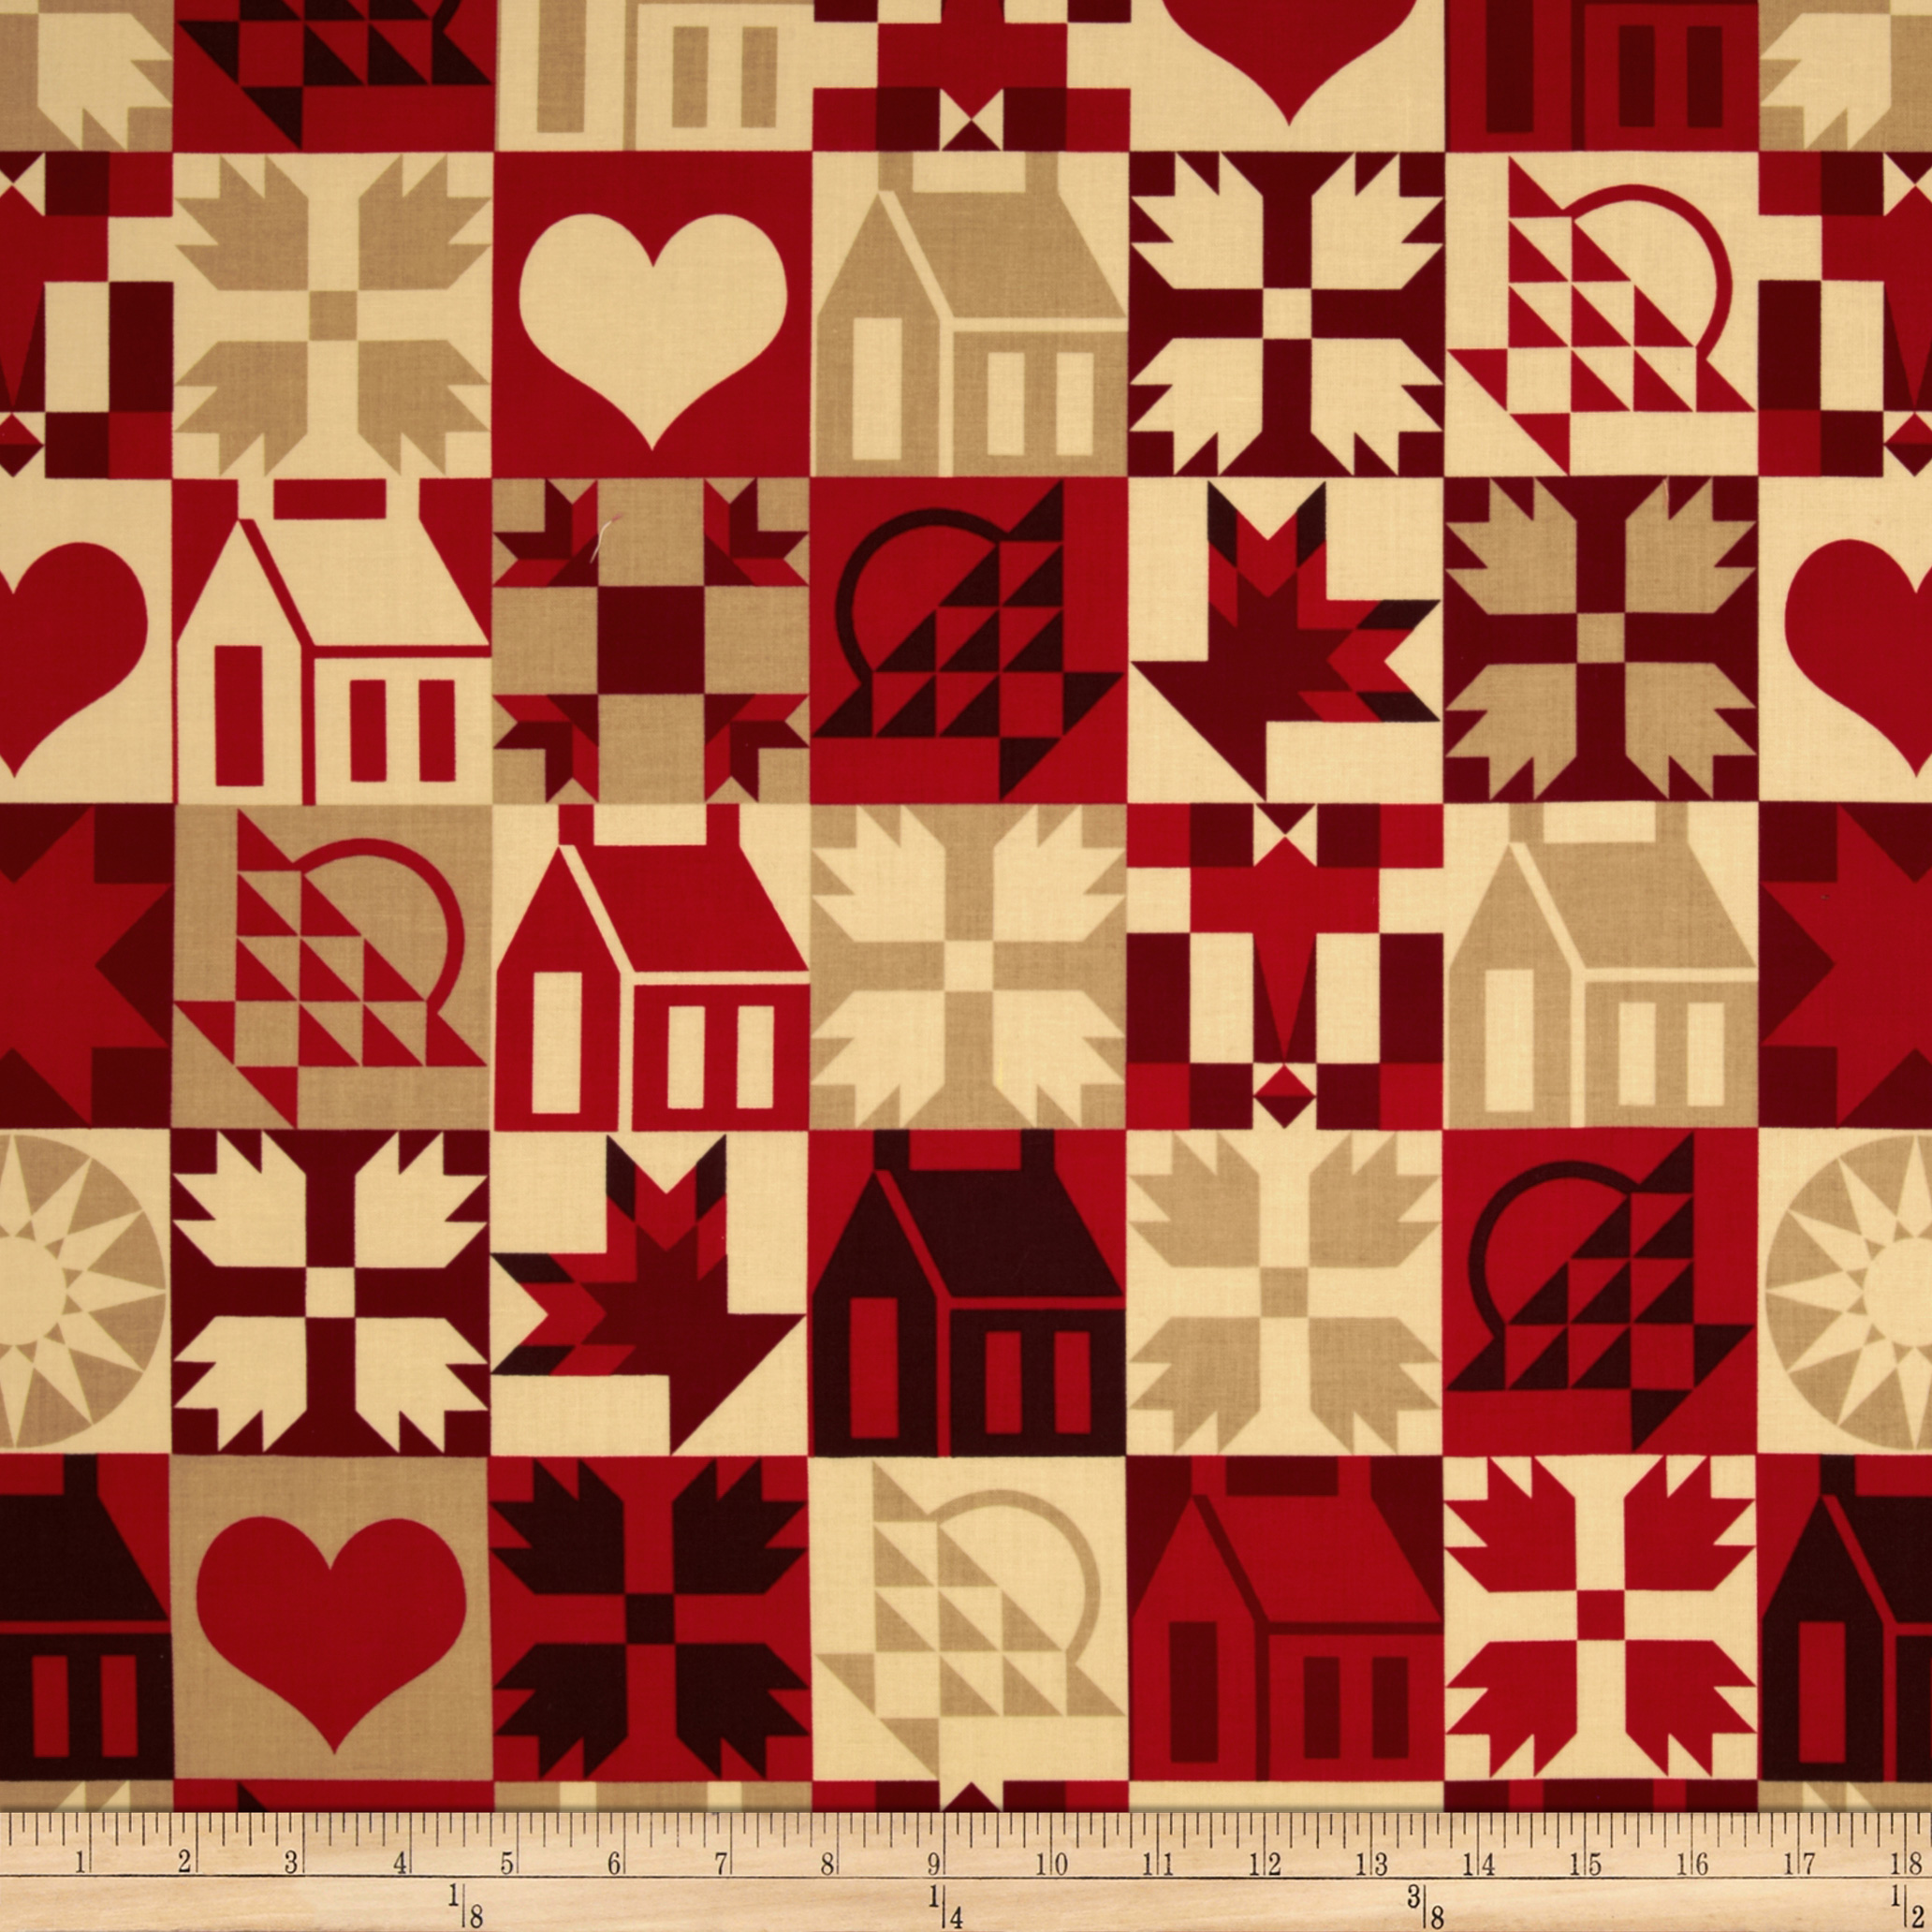 Hickory House Houses and Hearts in Squares Red/White/Tan